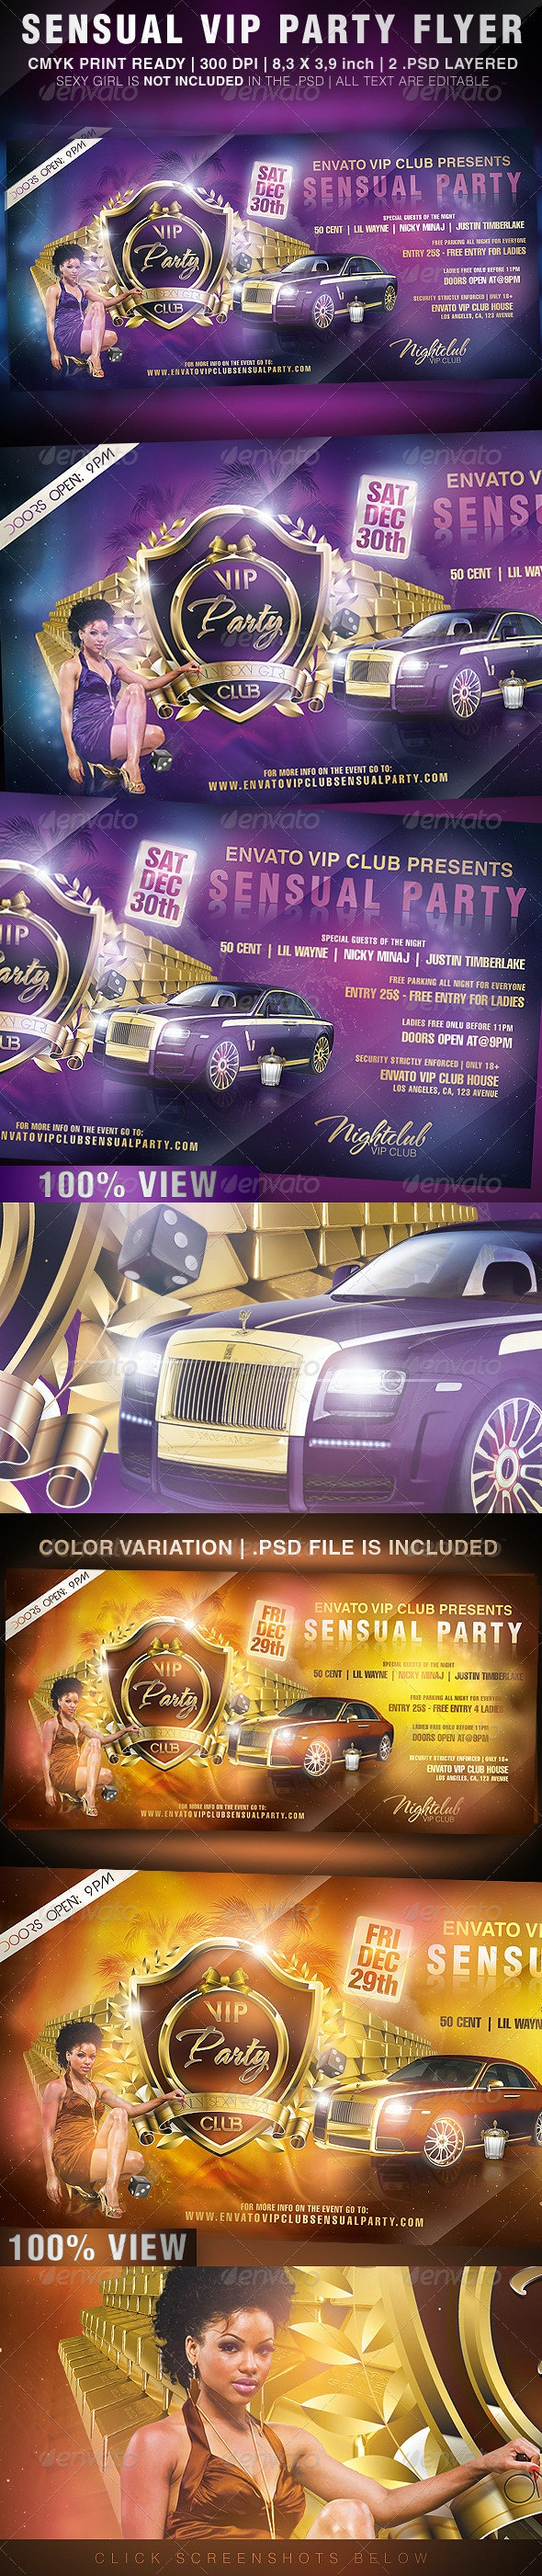 Sensual VIP Party Flyer - Clubs & Parties Events